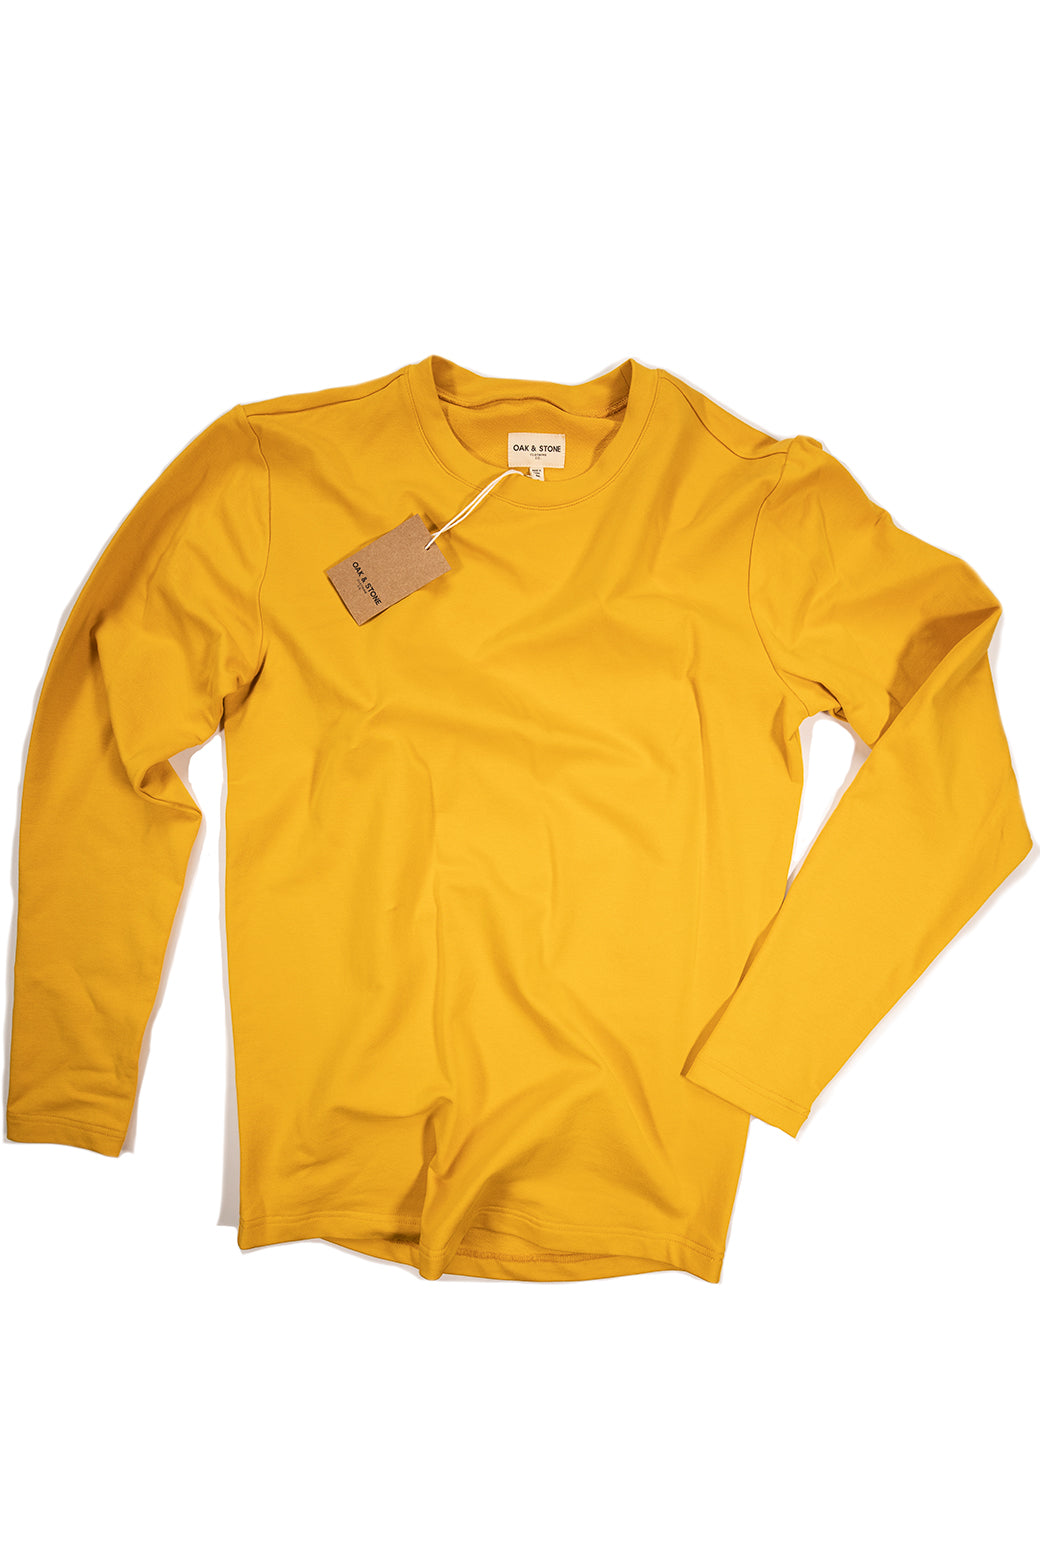 The Classic L/S Tee - Mustard - Oak & Stone Clothing Co.